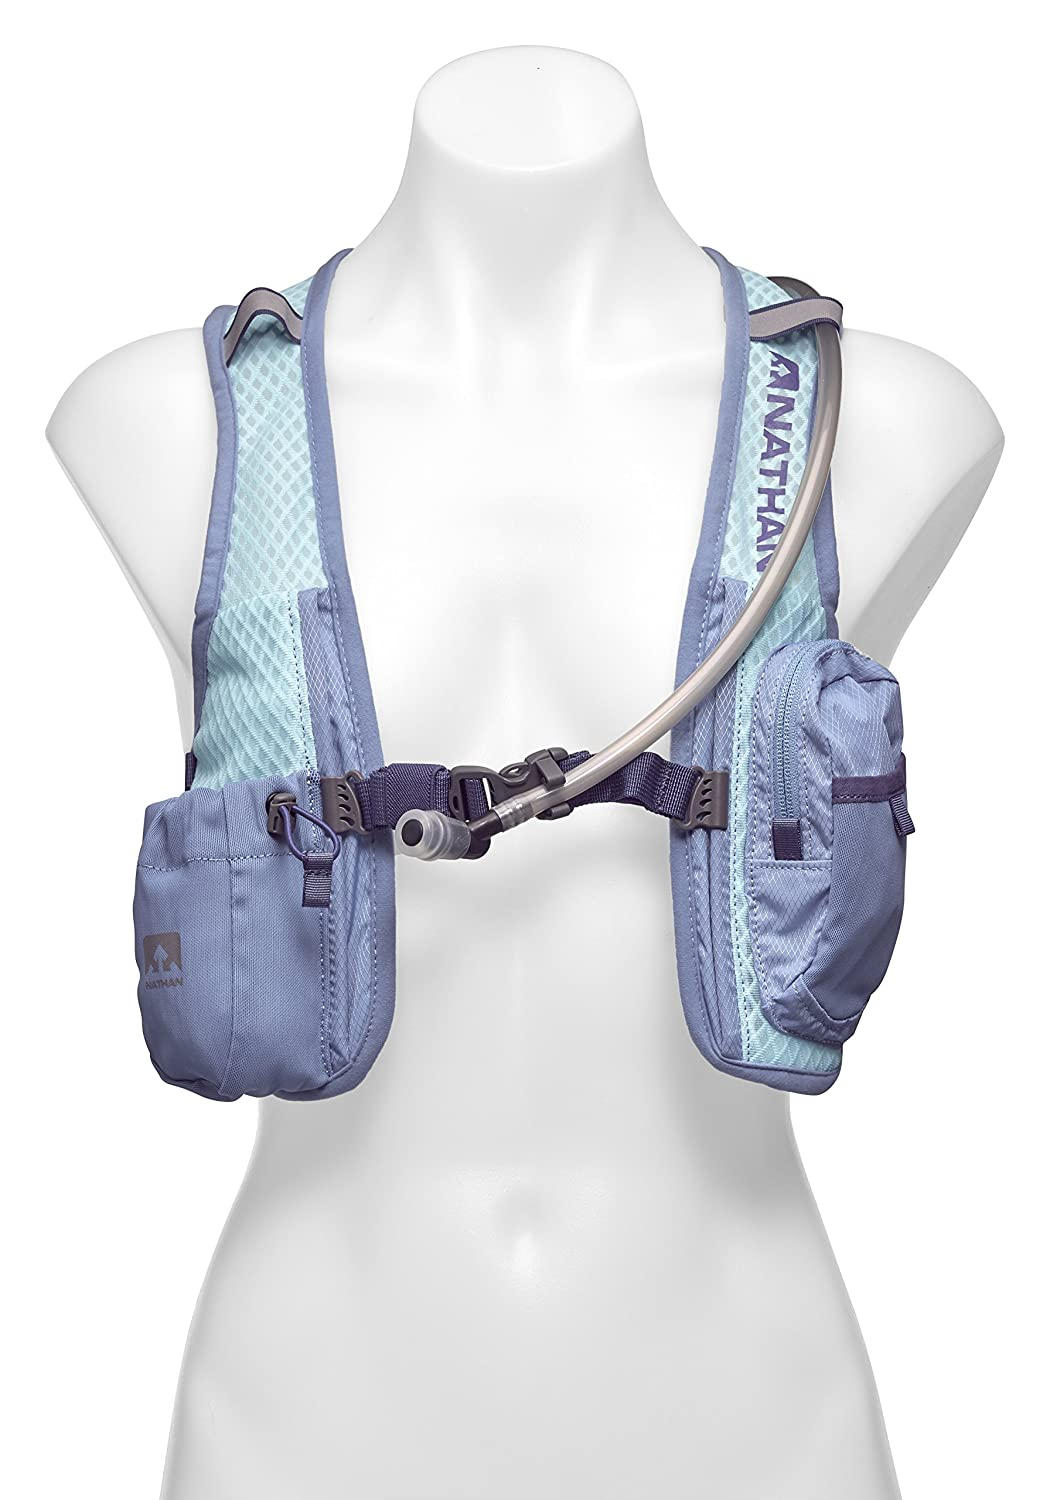 Nathan Intensity Hydration Running Vest Backpack with Bladder, Blue Radiance, 2 L